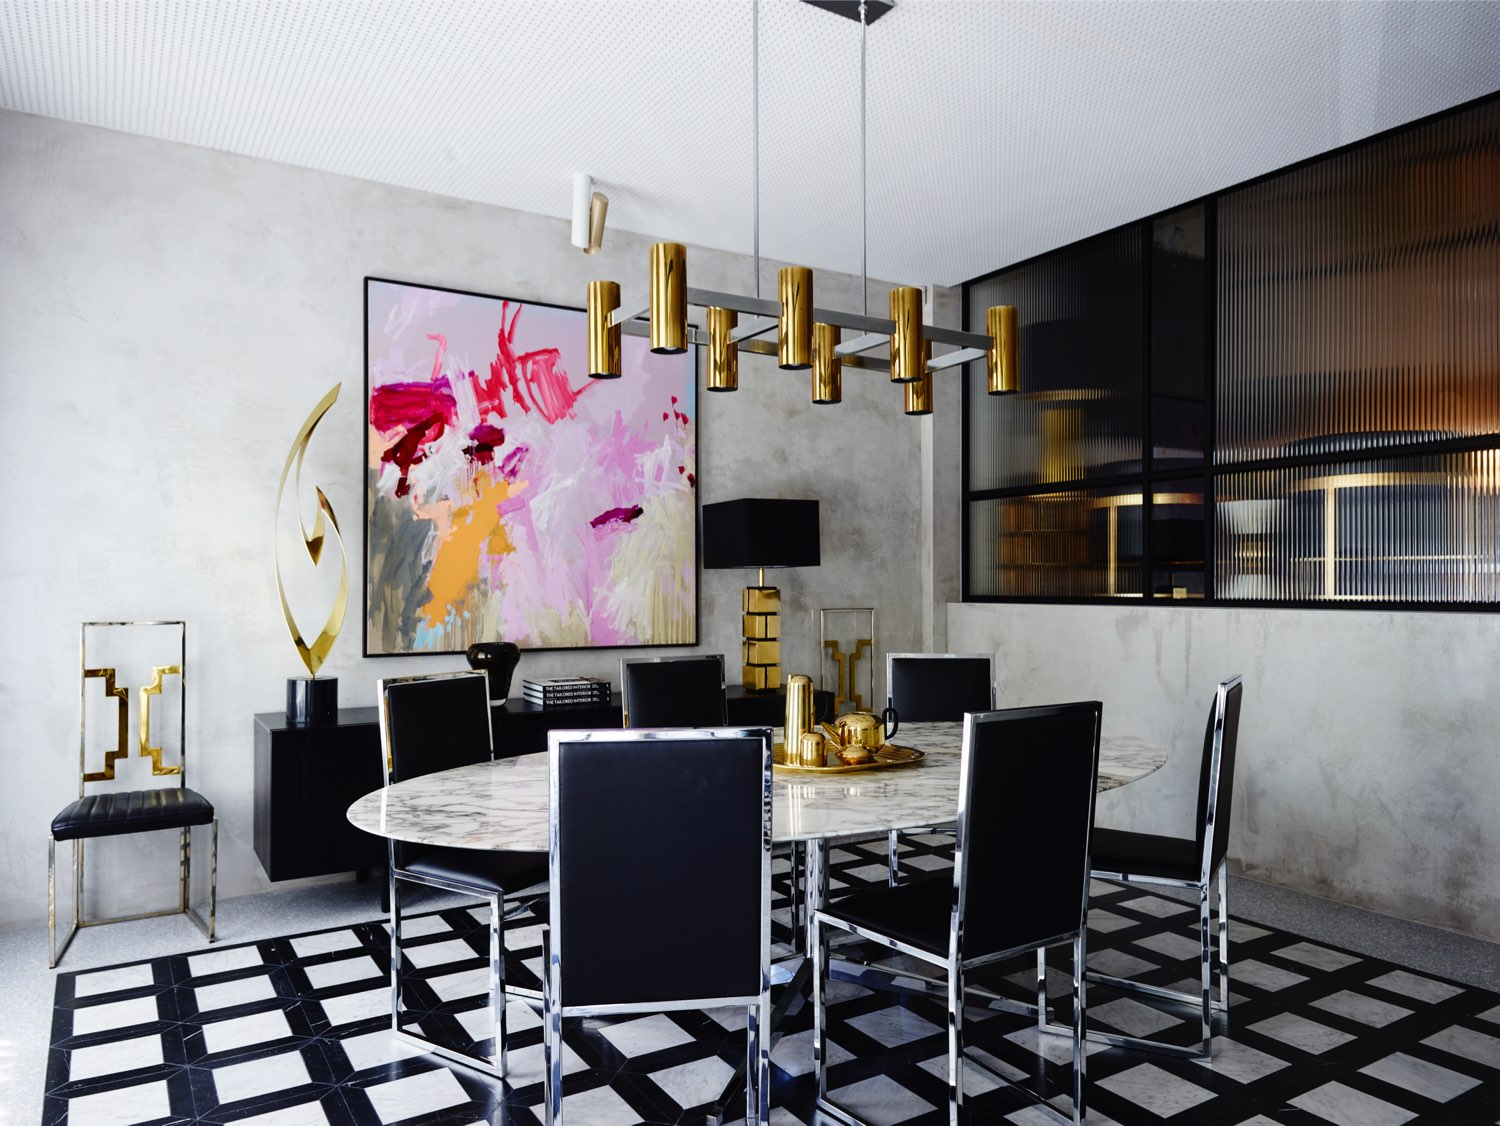 A glint of metal goes a long way. These silver, shiny dining chairs serve up pure, dazzling lines in this room.